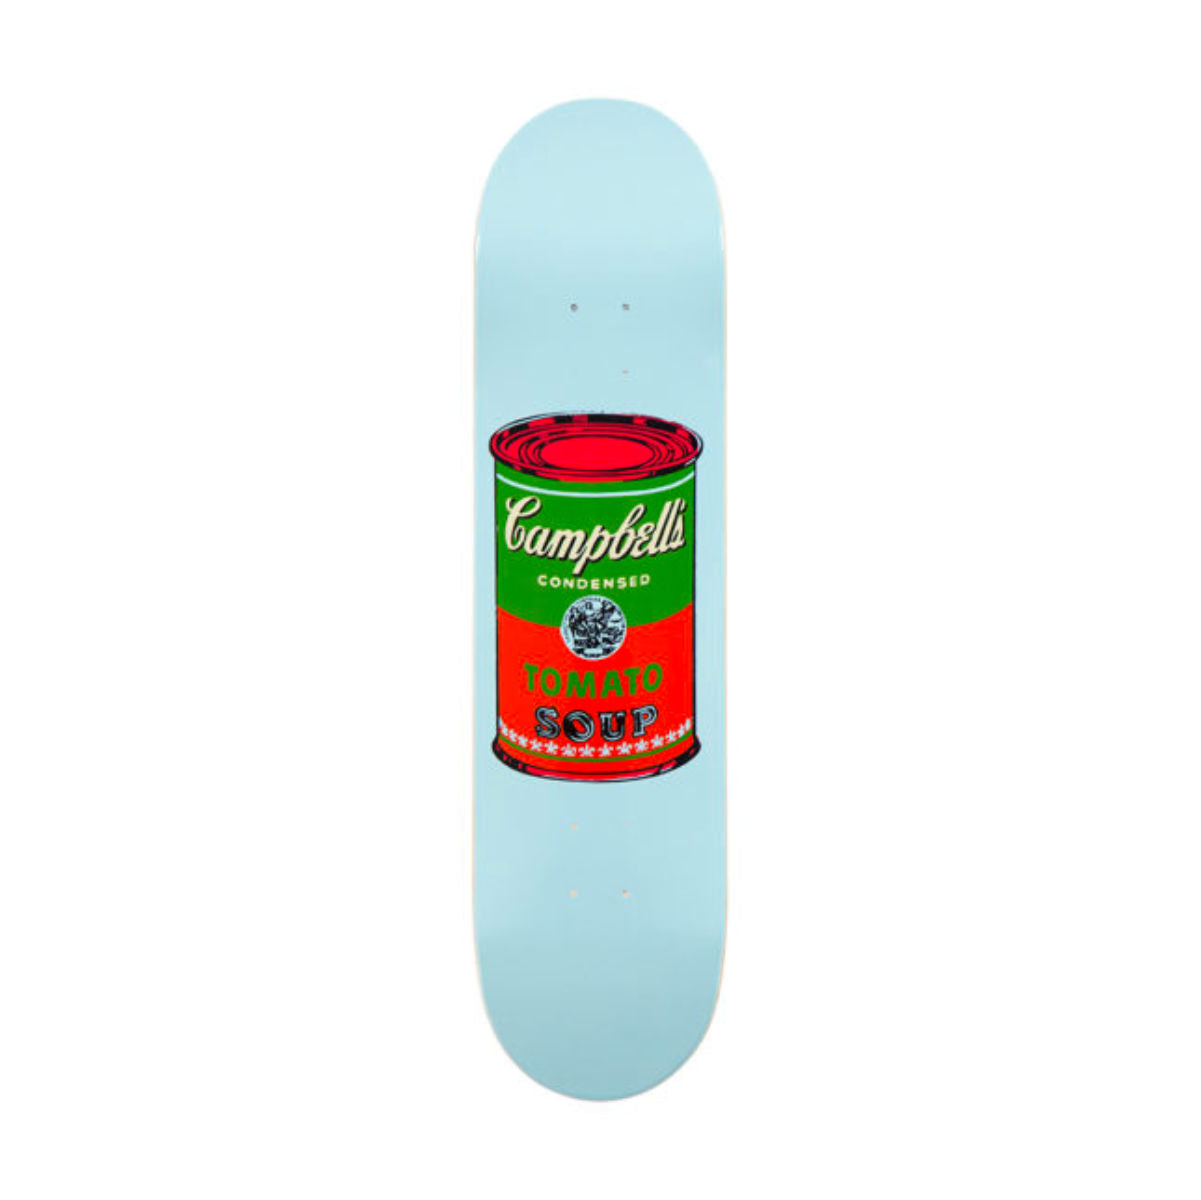 The Skateroom skateboard, Andy Warhol Colored Campbell's Soup red